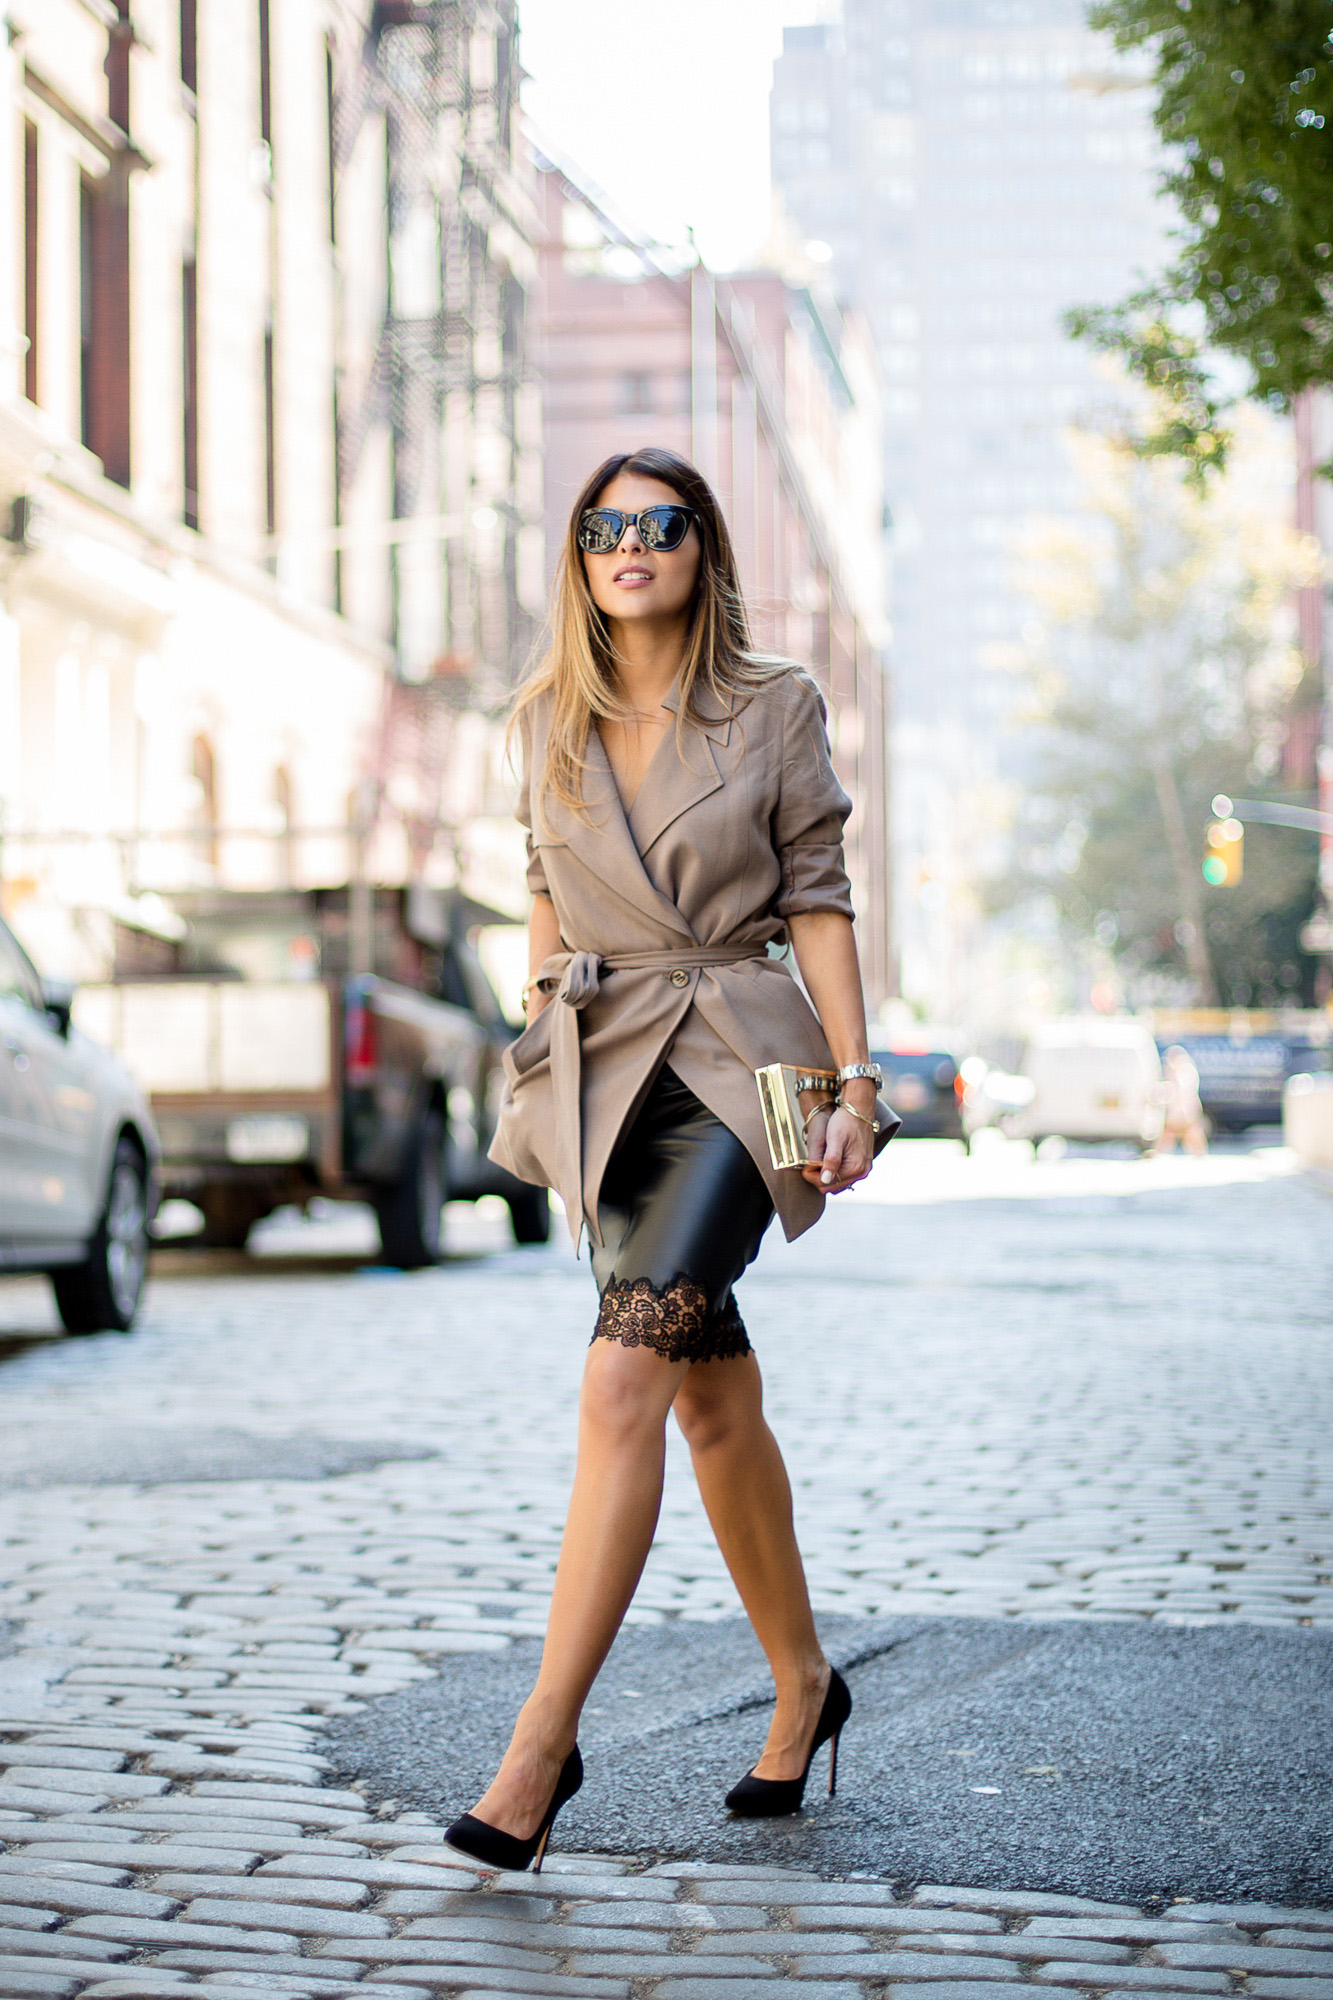 Pam Hetlinger rocks this beige trench and leather skirt. Skirt/Trench/Pumps: Reiss.